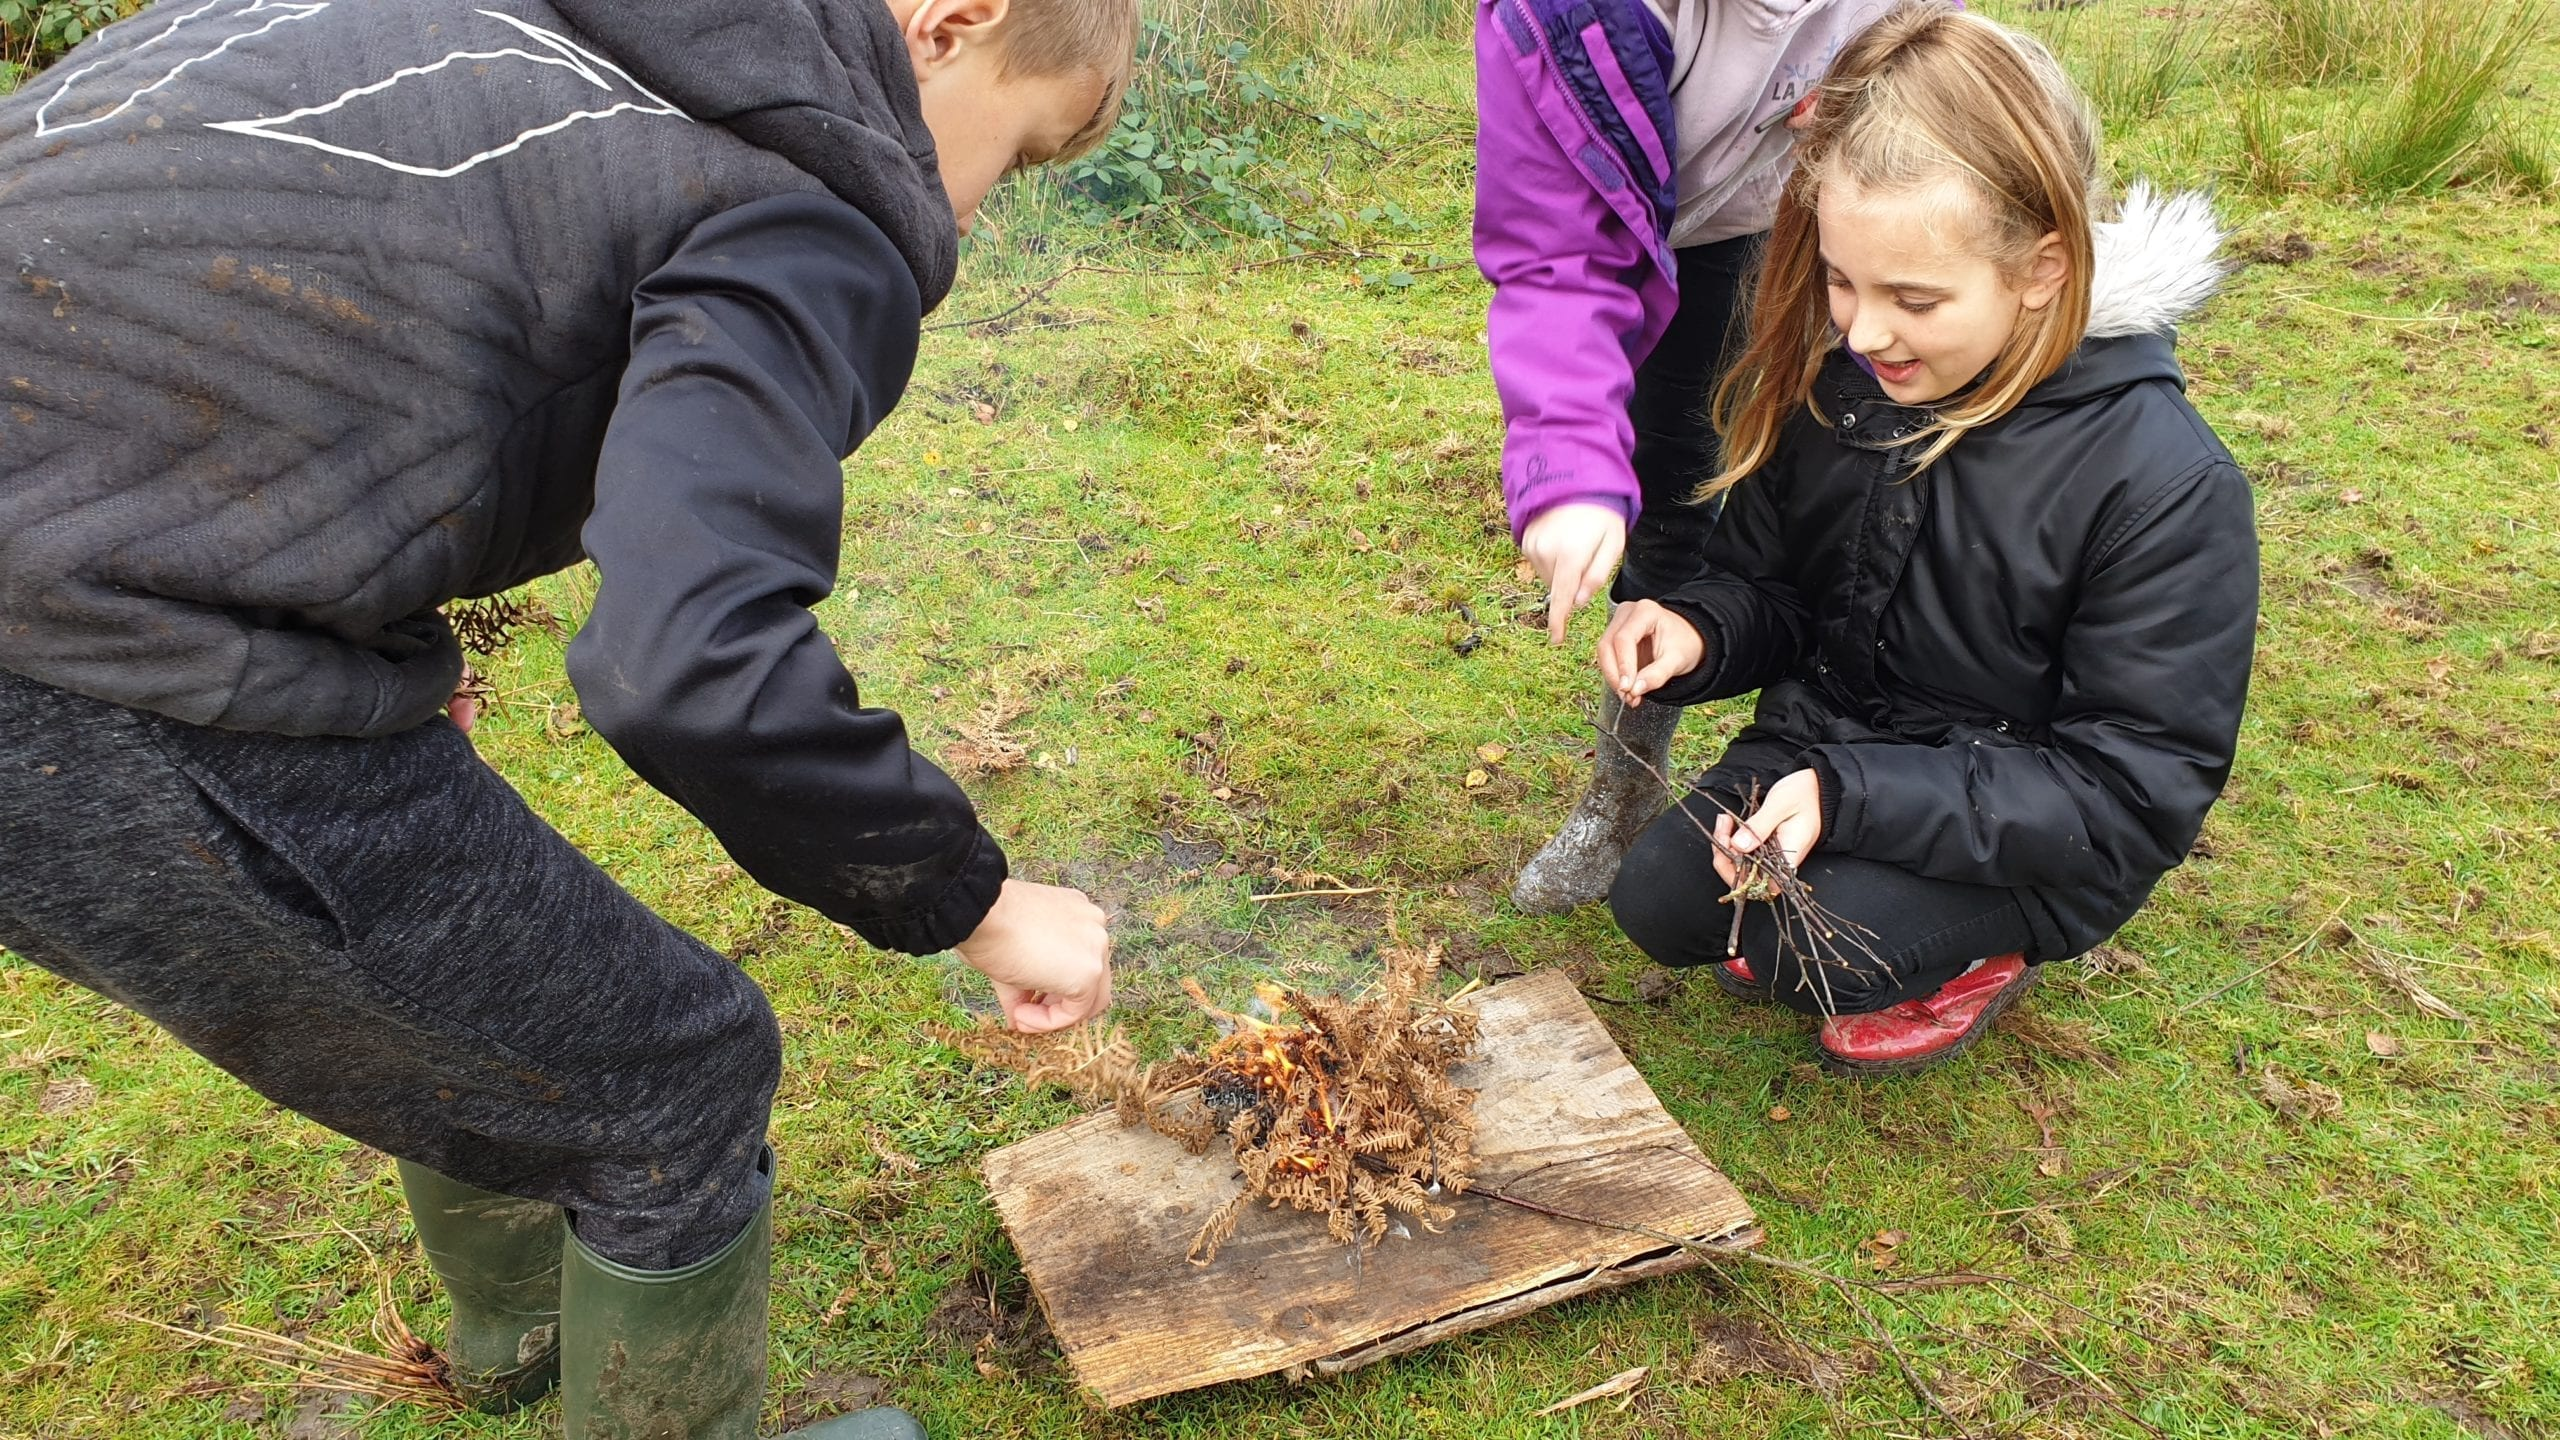 Learning fire-making skills